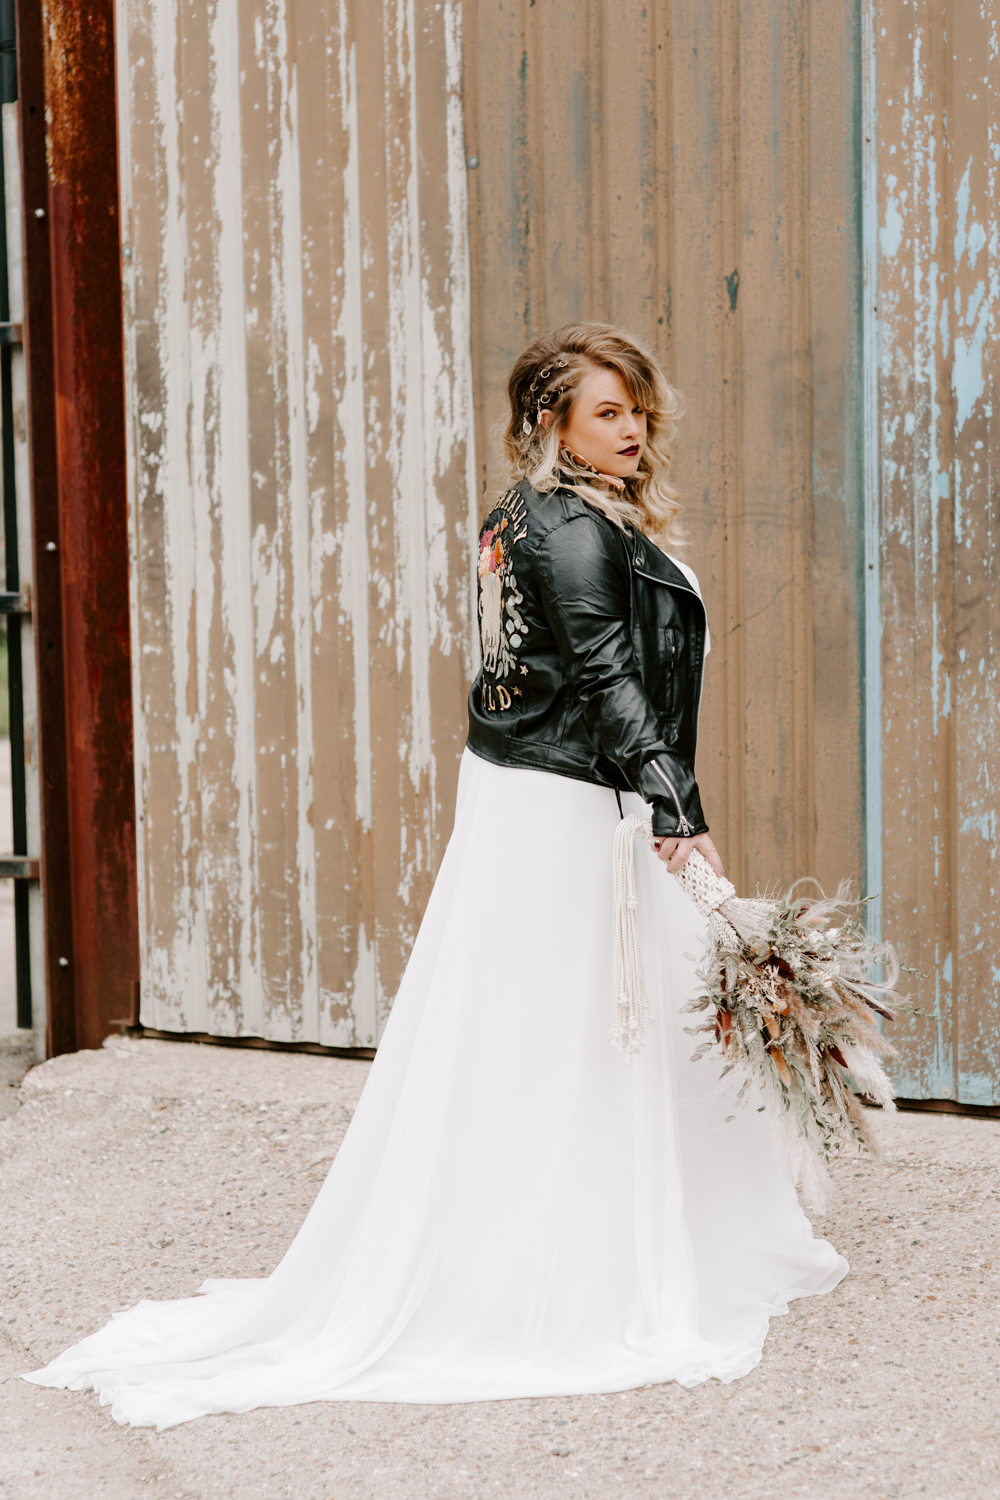 Bride wearing leather jacket at Barns at Lodge Farm